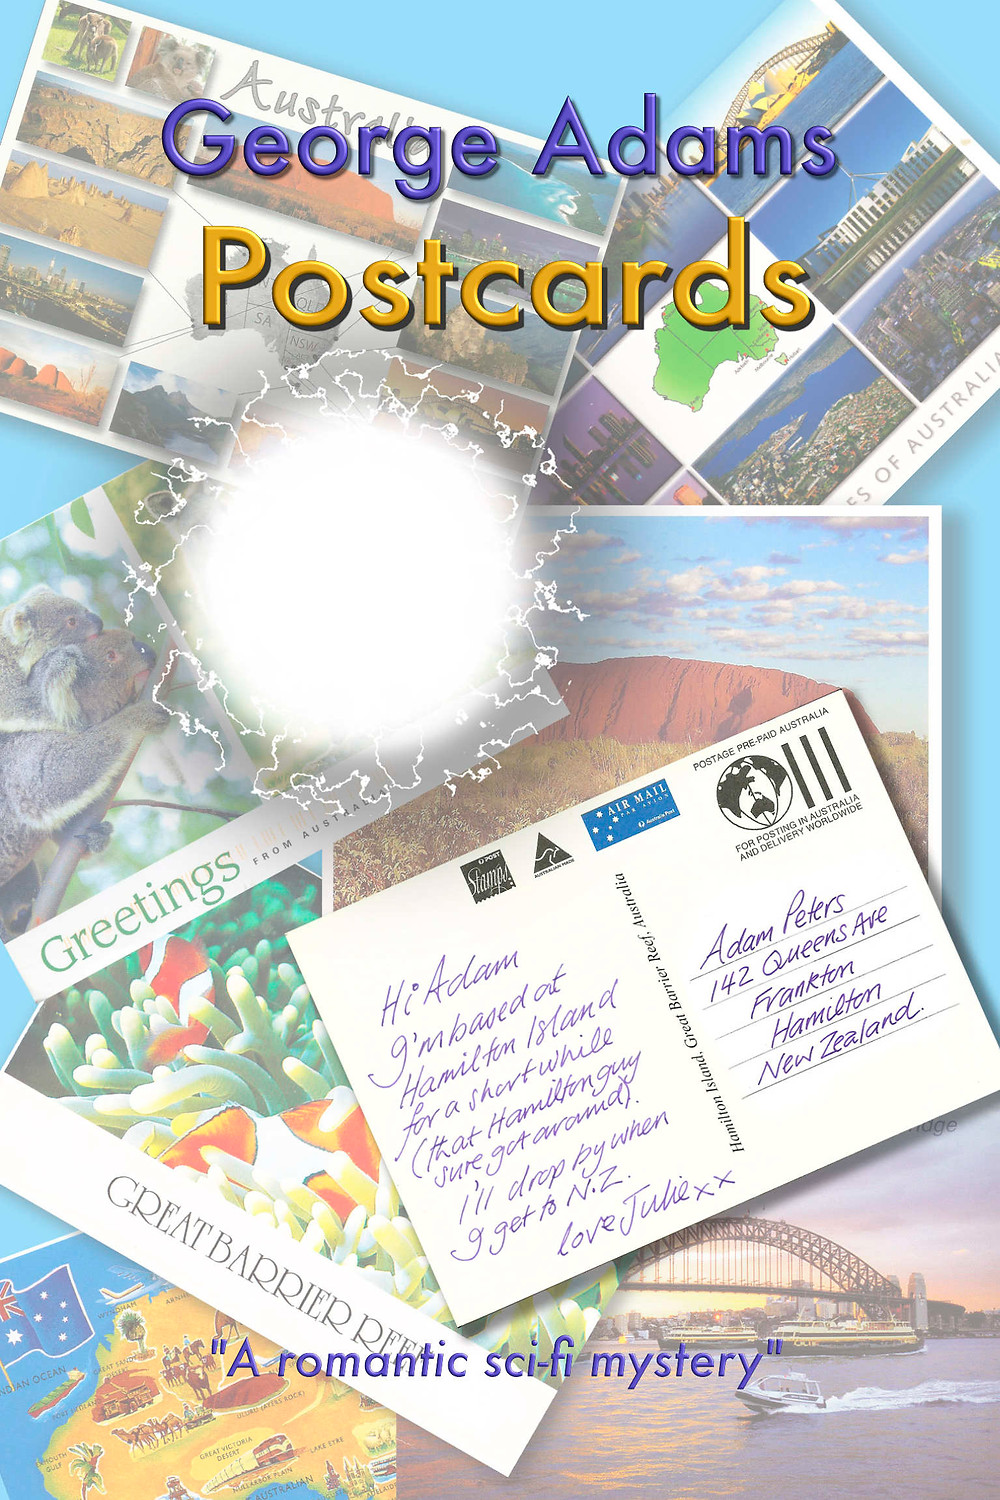 Postcards by George Adams book cover